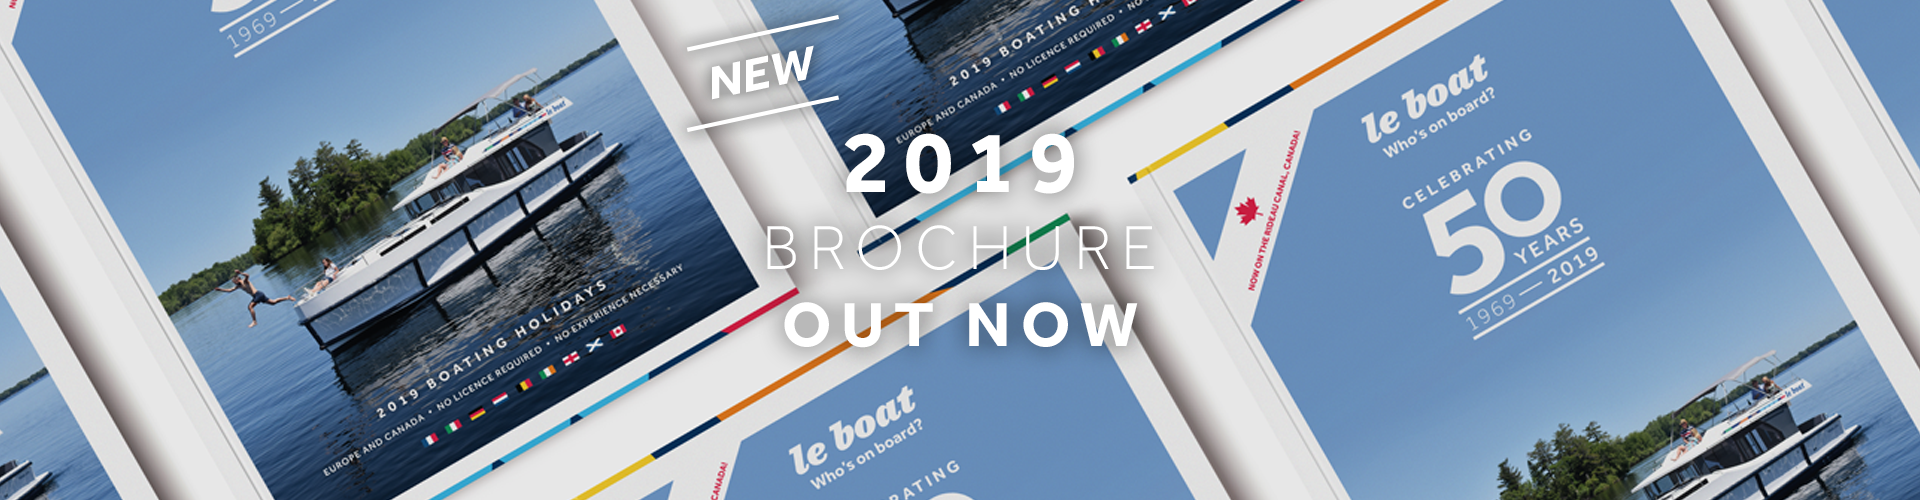 Le Boat - download your brochure today